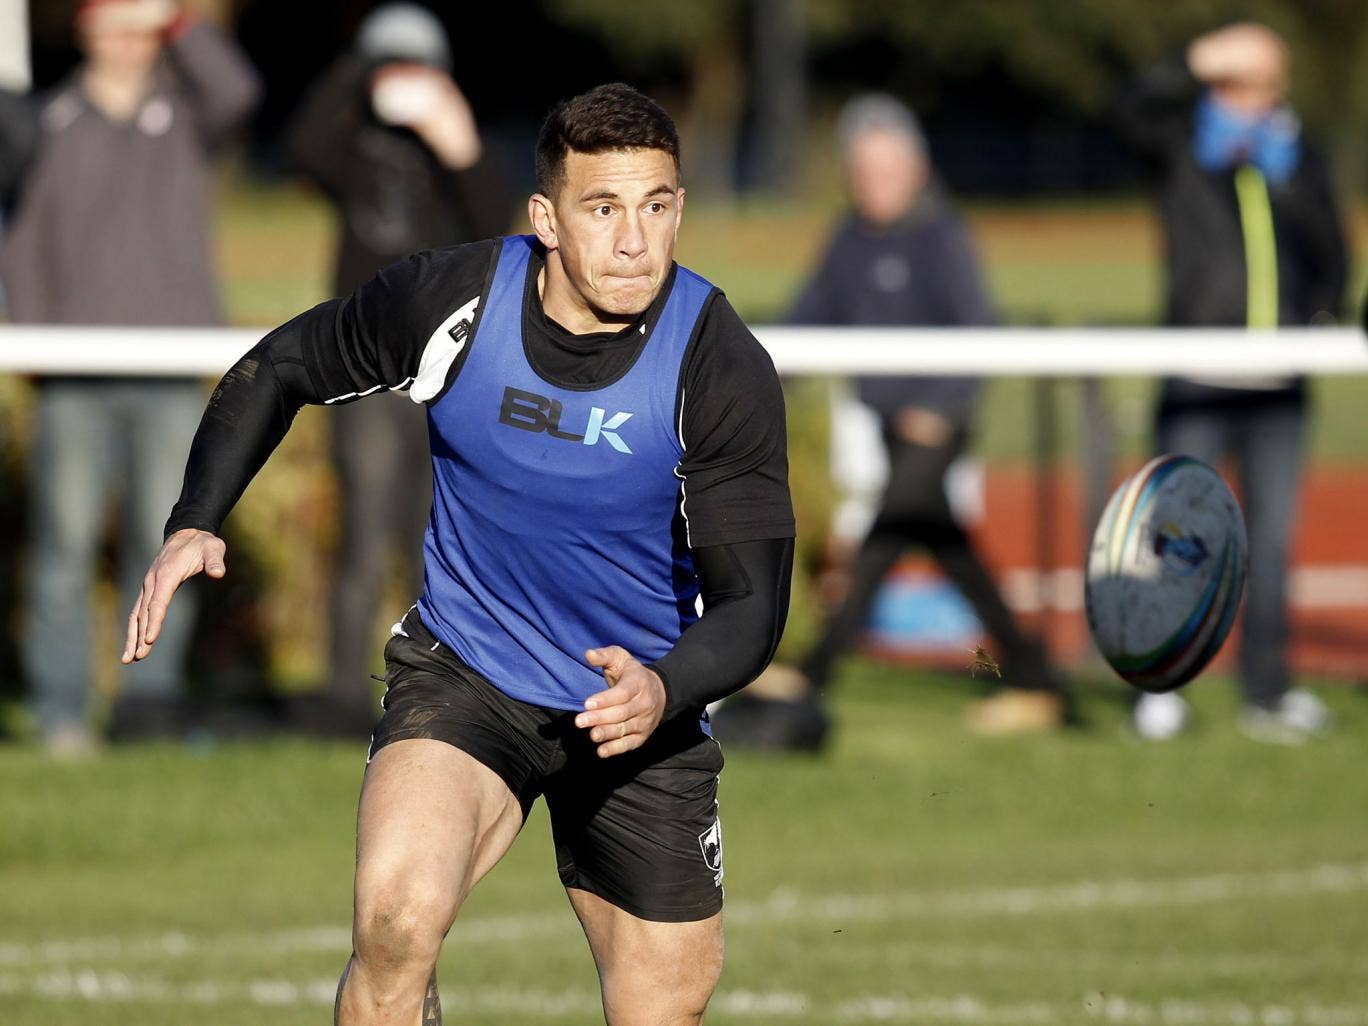 New Zealand's Sonny Bill Williams will pose a huge threat to the Australians in tthes World Cup final at Old Trafford – but can he help them retain their crown?